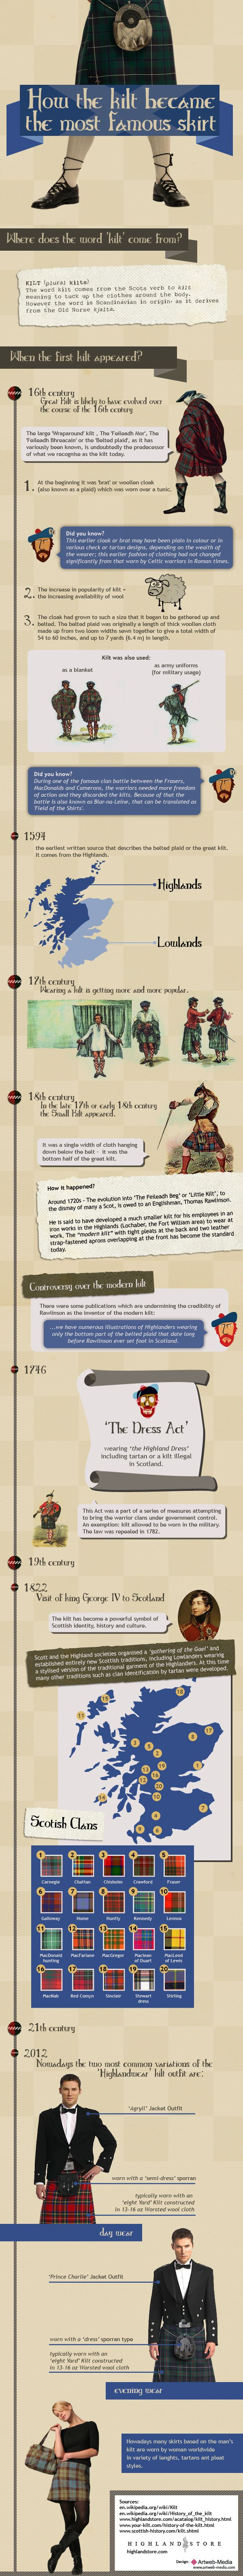 Kilt - infographic:  How the kilt became the most famous skirt  http://www.highlandstore.com/blog/index.php/2012/11/history-of-the-kilt-infographic/